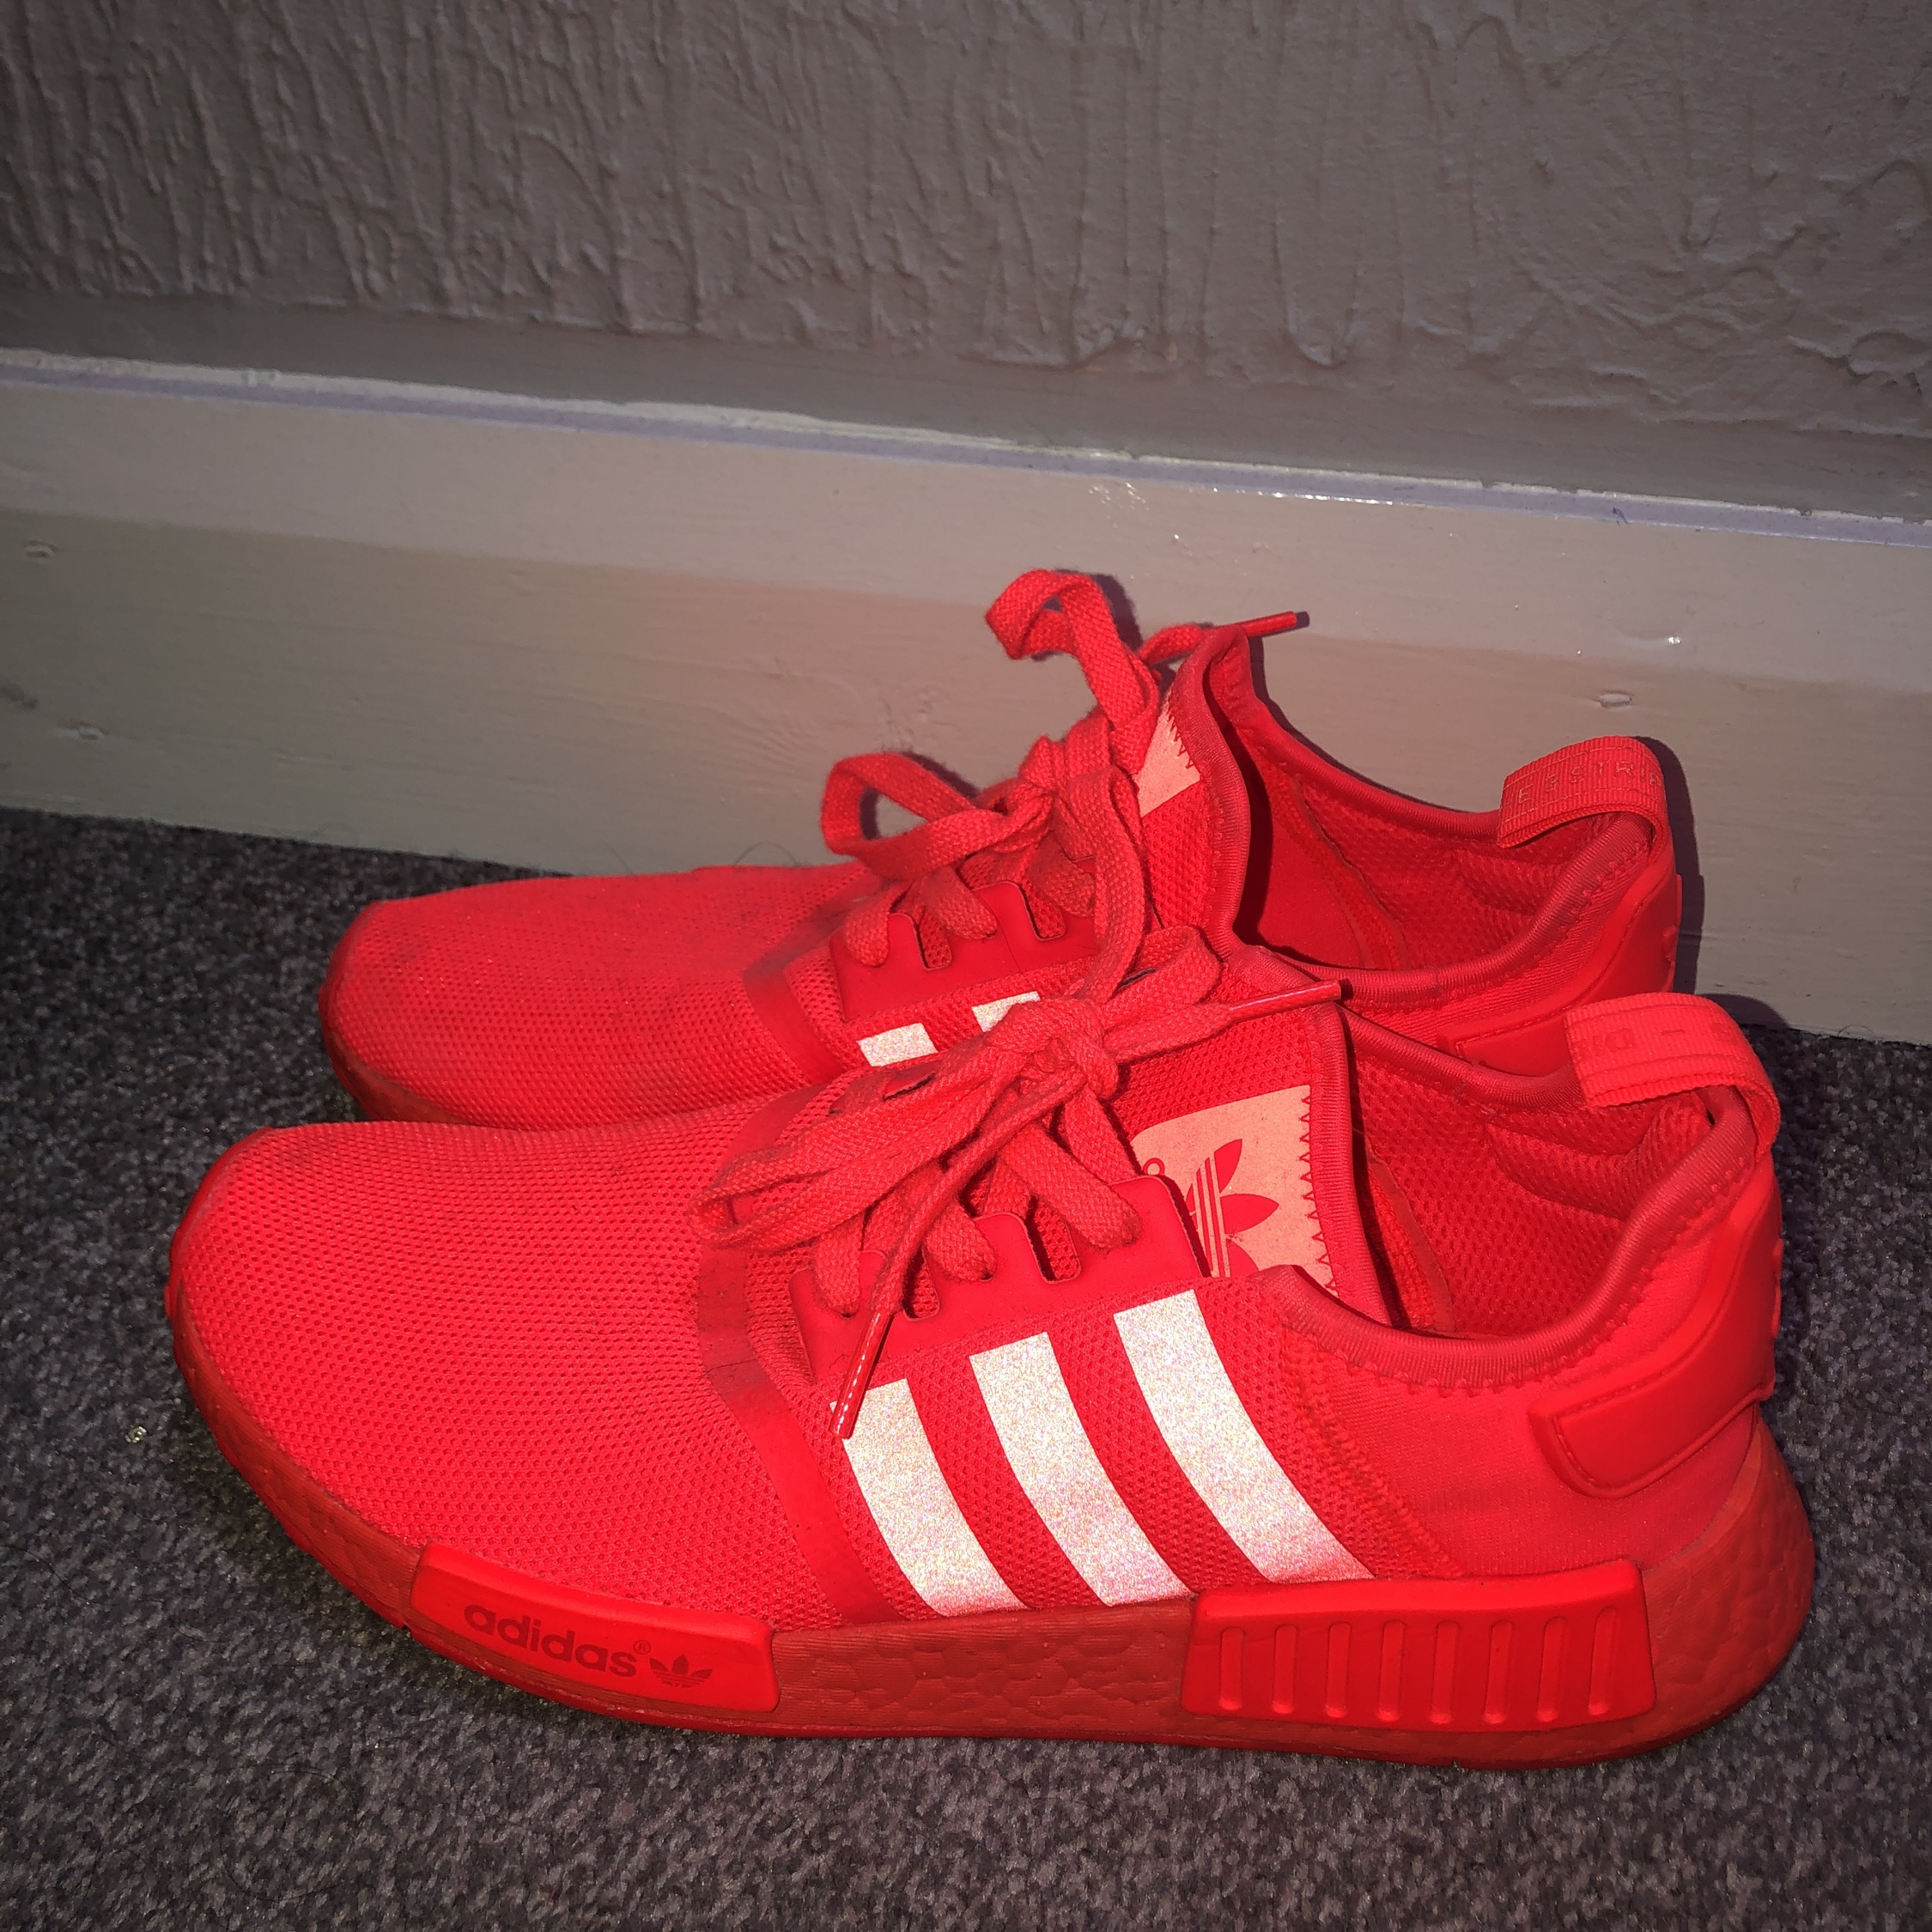 buy popular 7574b ca31d Adidas Nmd Reflective Orange Red Men's Shoes